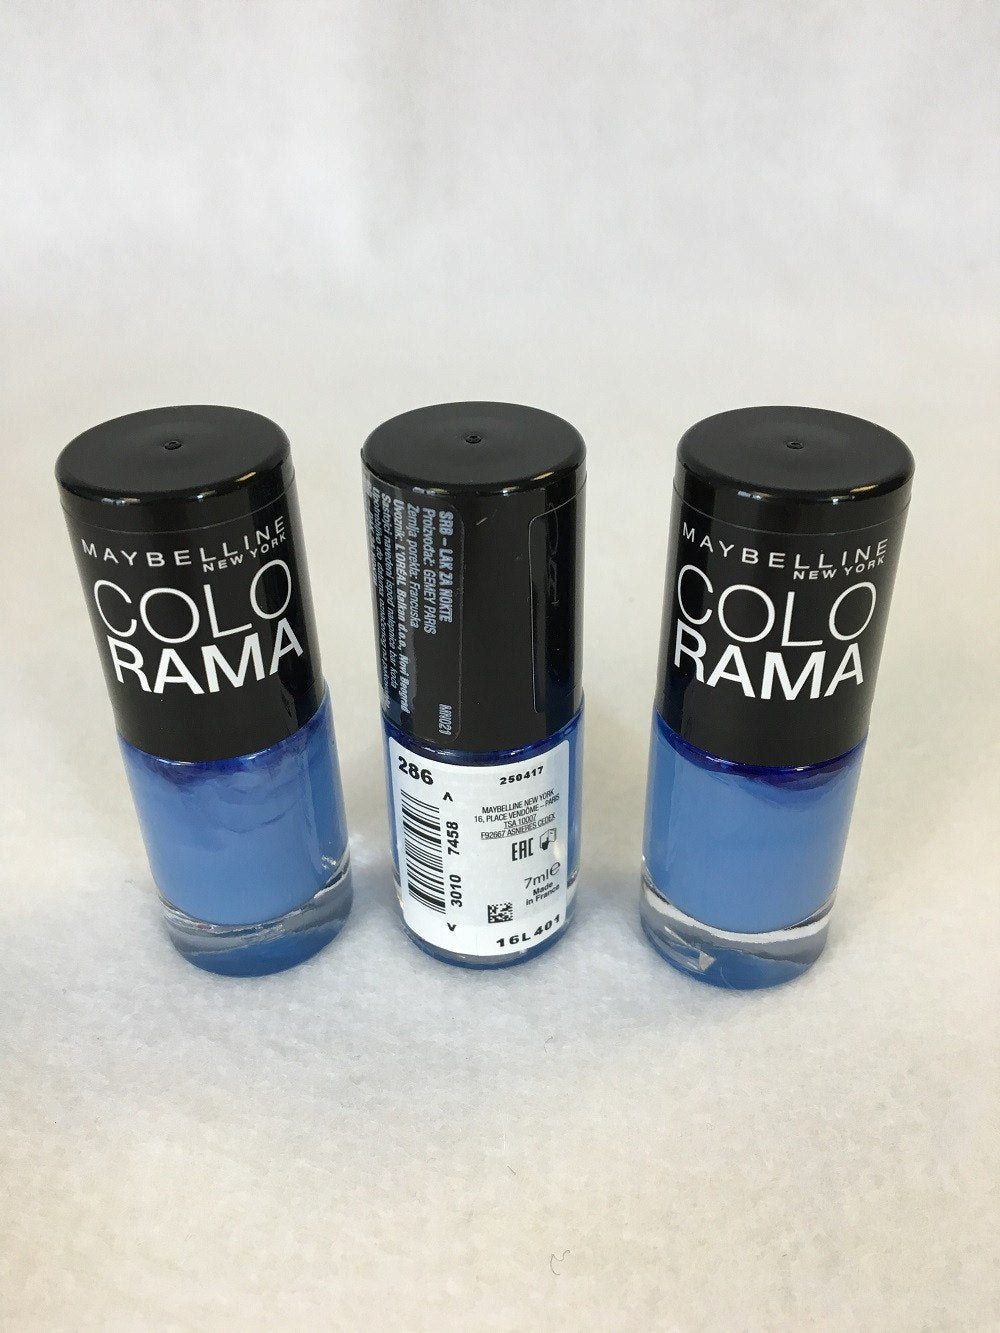 Maybelline Colorama Nail Polish. 286 Maybe Blue x 12 (£0.40 each) - Fizzy Peach Ltd